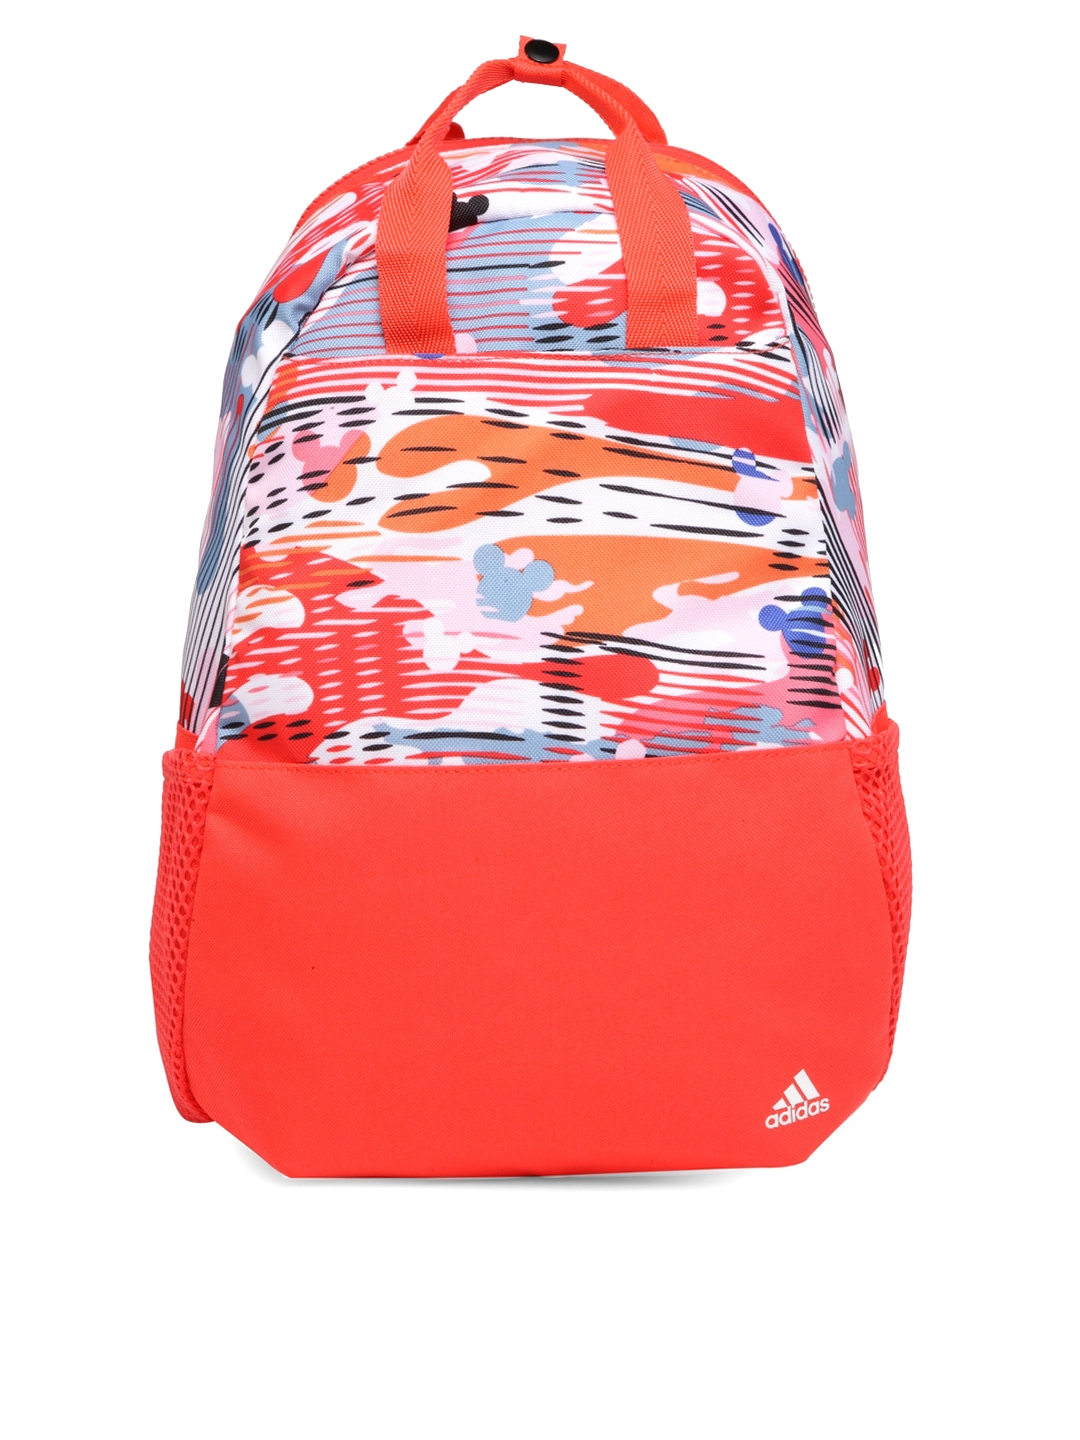 d40a7c0ac7 Buy ADIDAS Unisex Orange & White DY LK BP MSE Printed Backpack ...